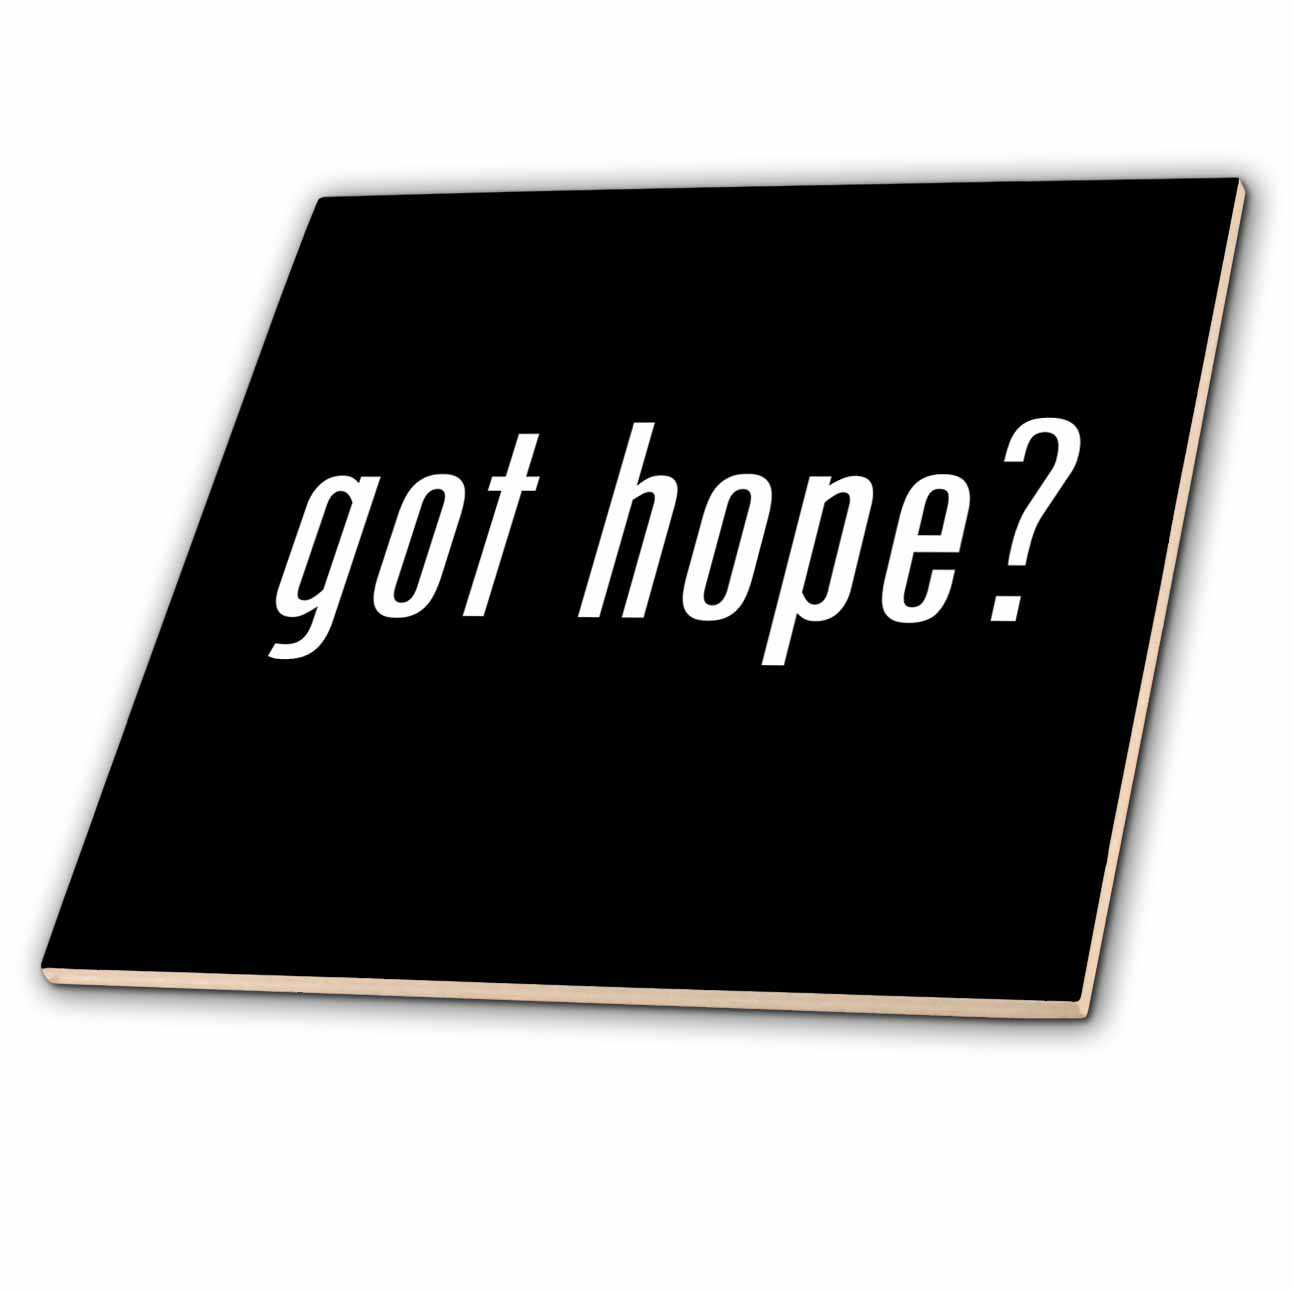 3dRose Got Hope - Glass Tile, 8-inch